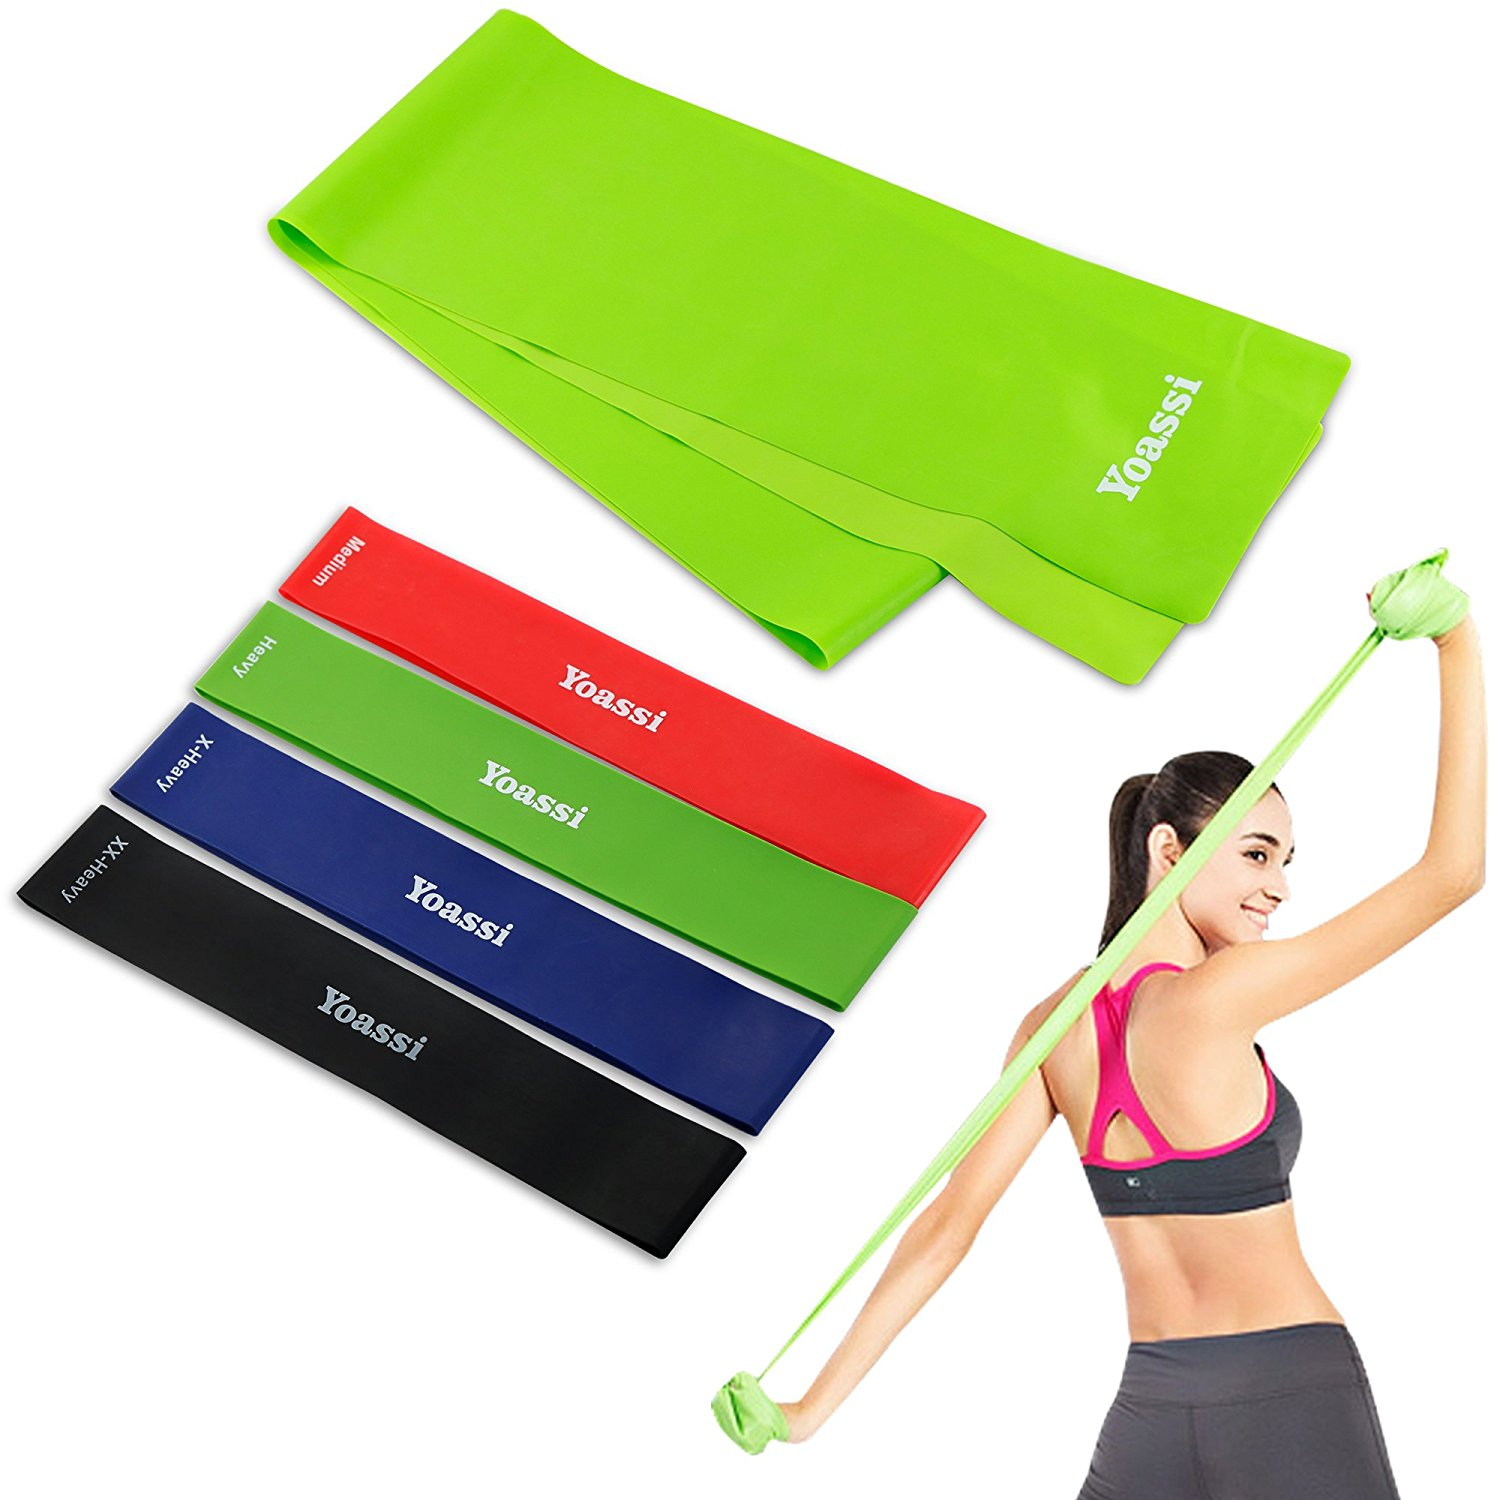 work anti farland yoga slip exercise pin by out mat workout mats eco friendly tpe non